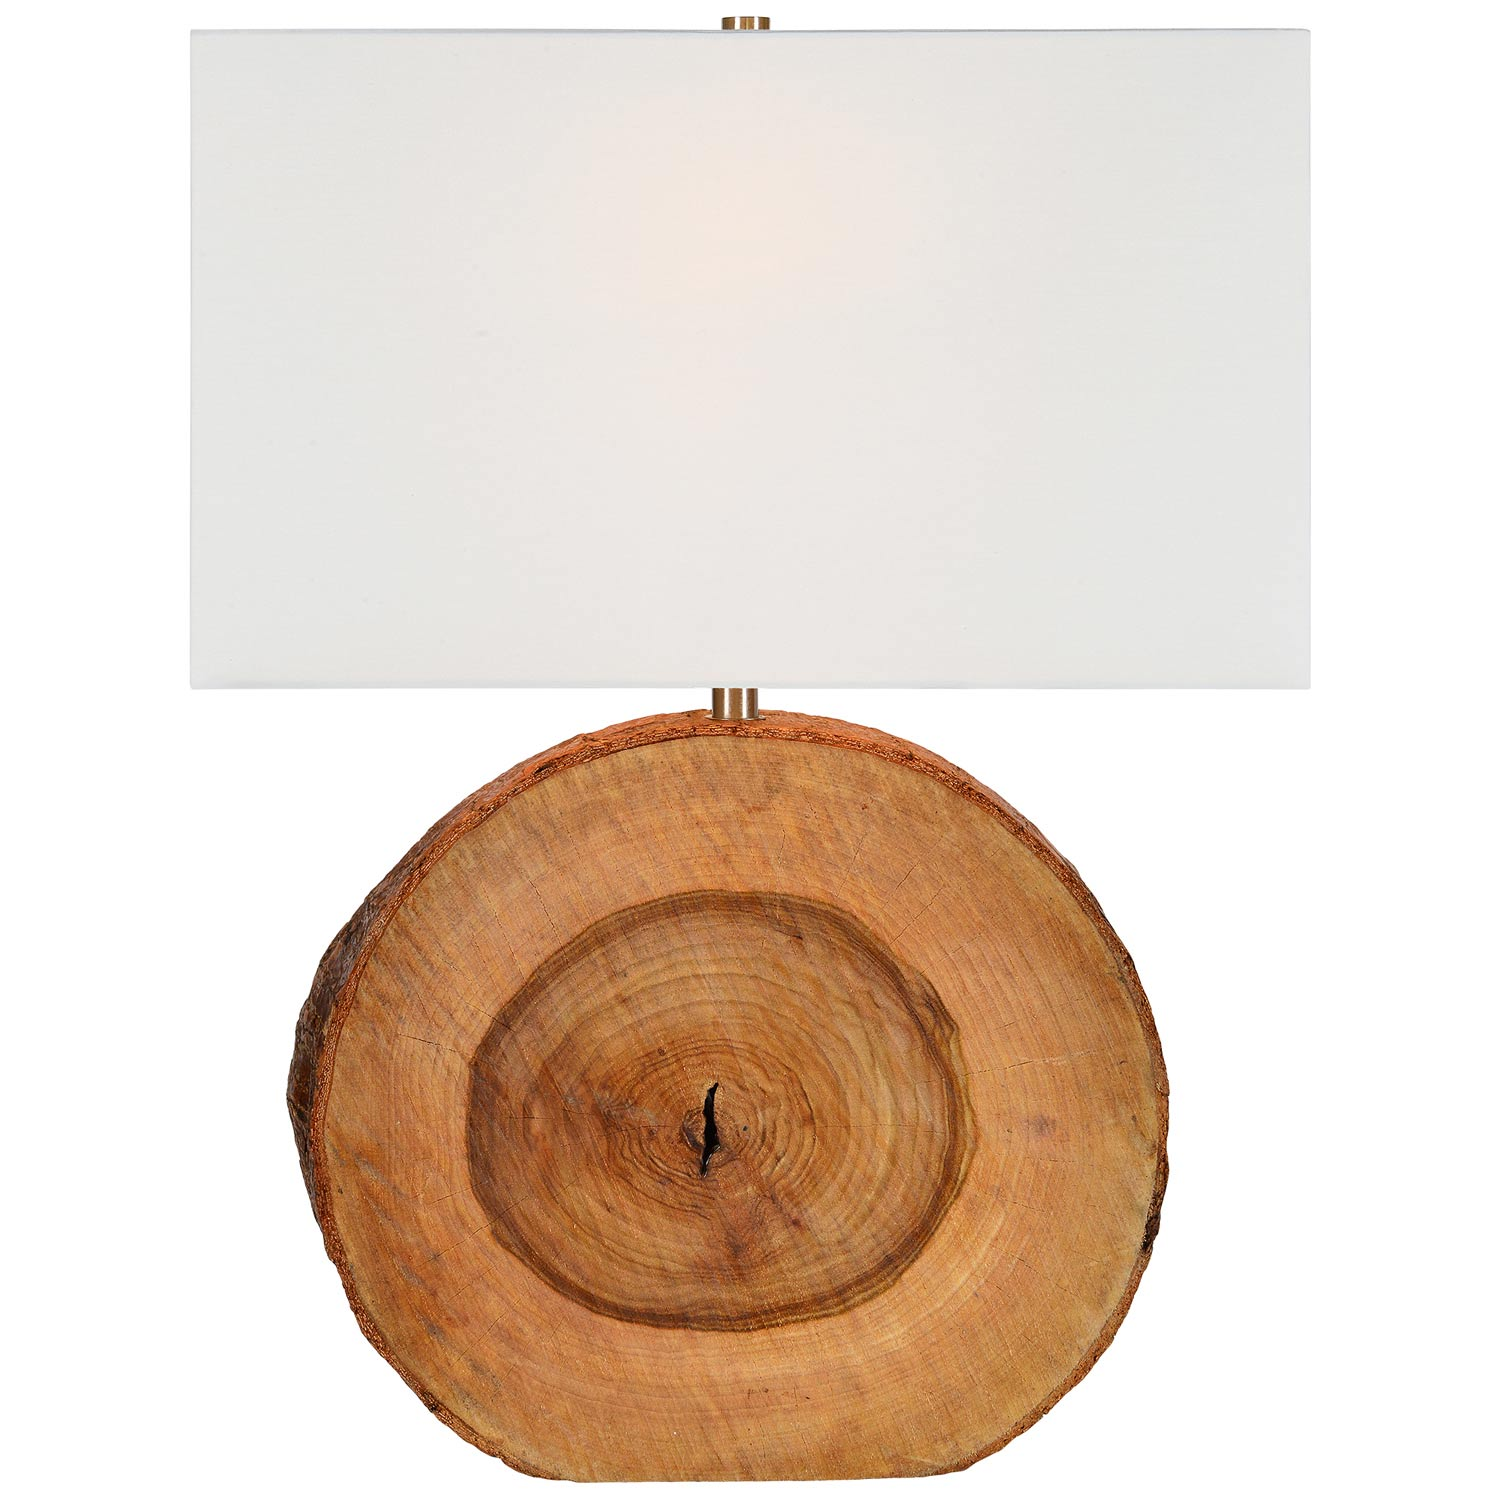 Ren-Wil Elixa Table Lamp - Natural Wood